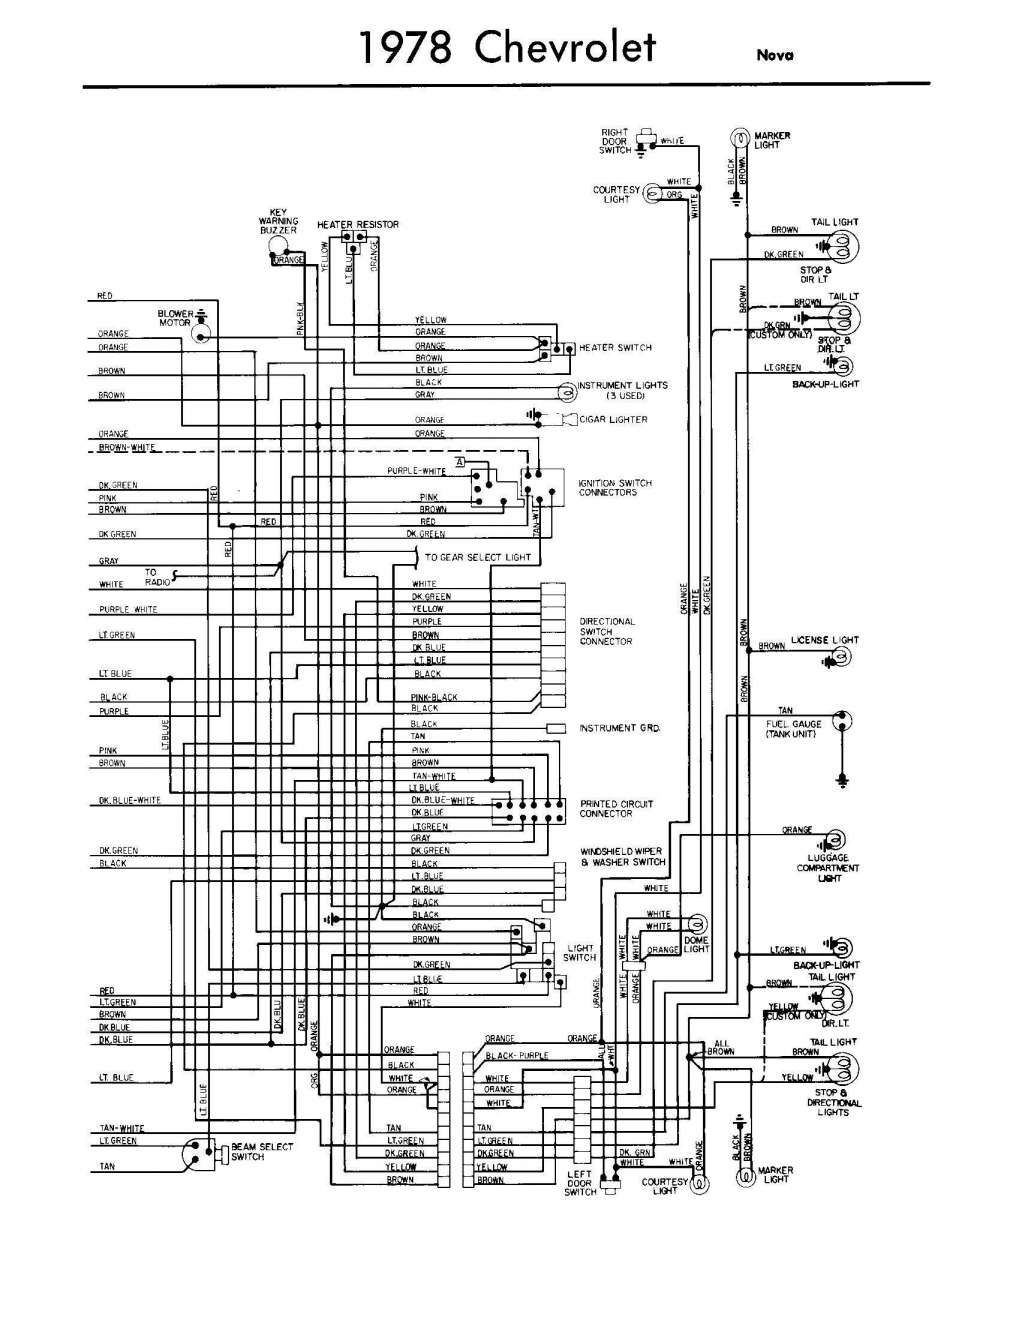 78 Chevy Truck Wiring Diagram And Block Diagram Drawing Images Free Download Wiring Diagrams Chevy Trucks Electrical Wiring Diagram Chevy